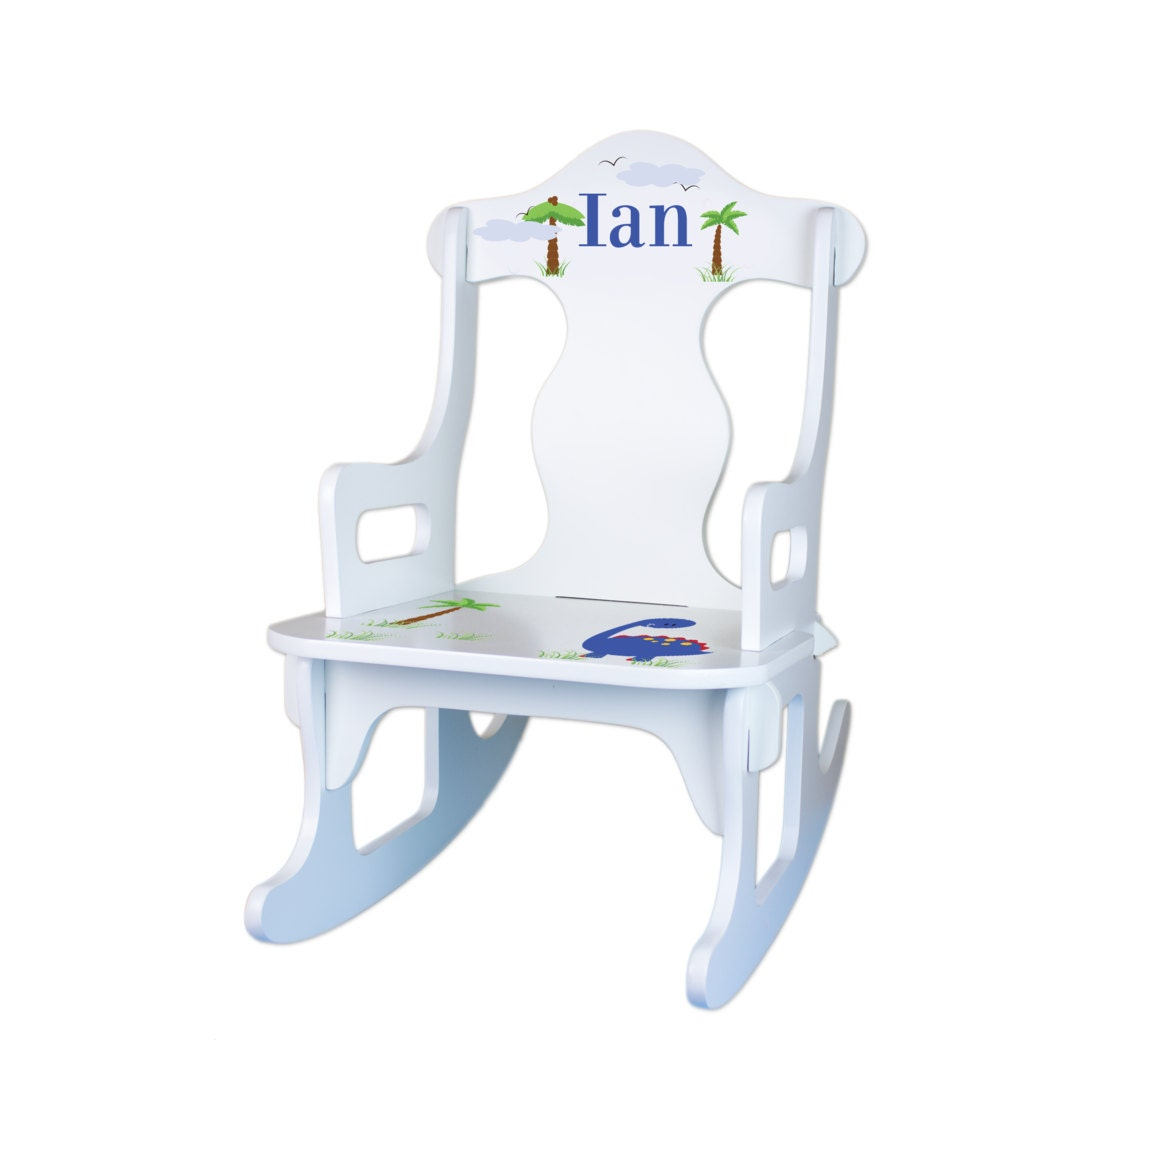 Personalized Kids Rocking Chair Custom White by WizkickGifts